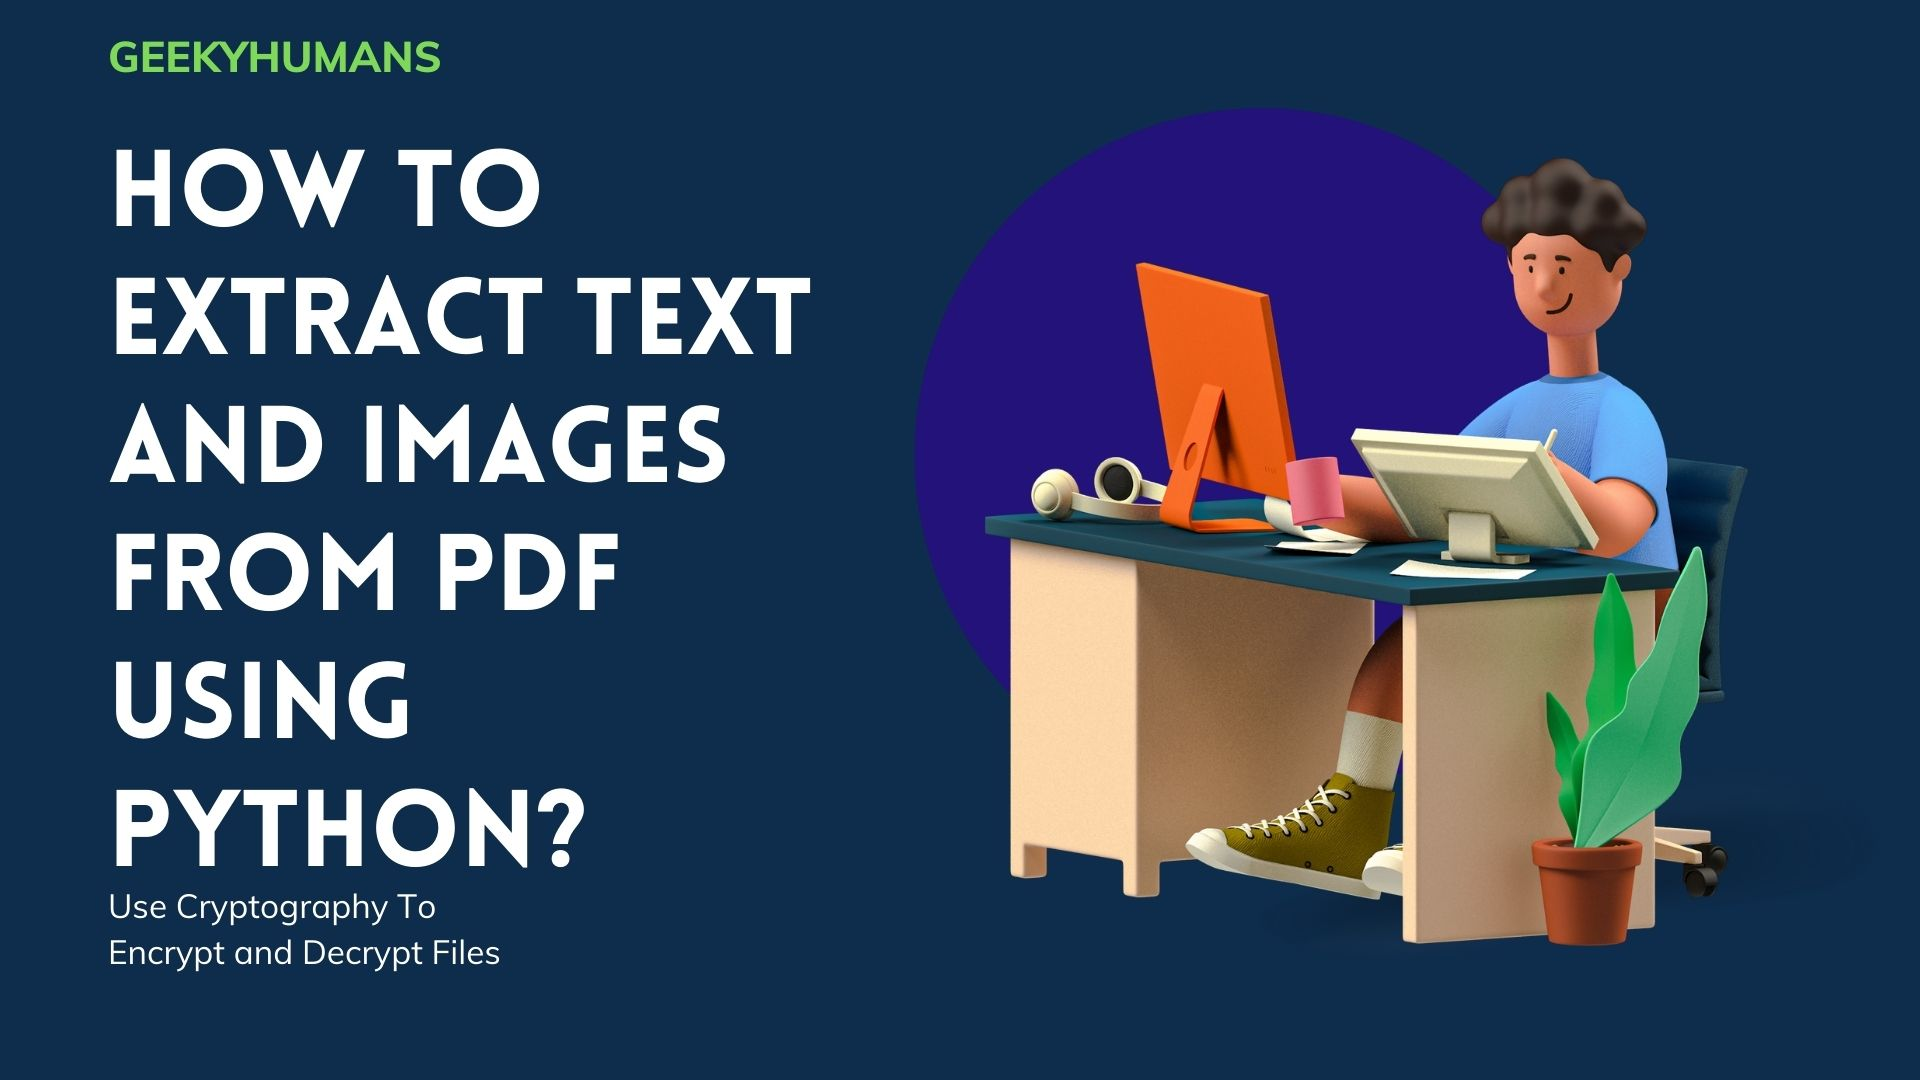 How-to-Extract-Text-and-Images-from-PDF-using-Python